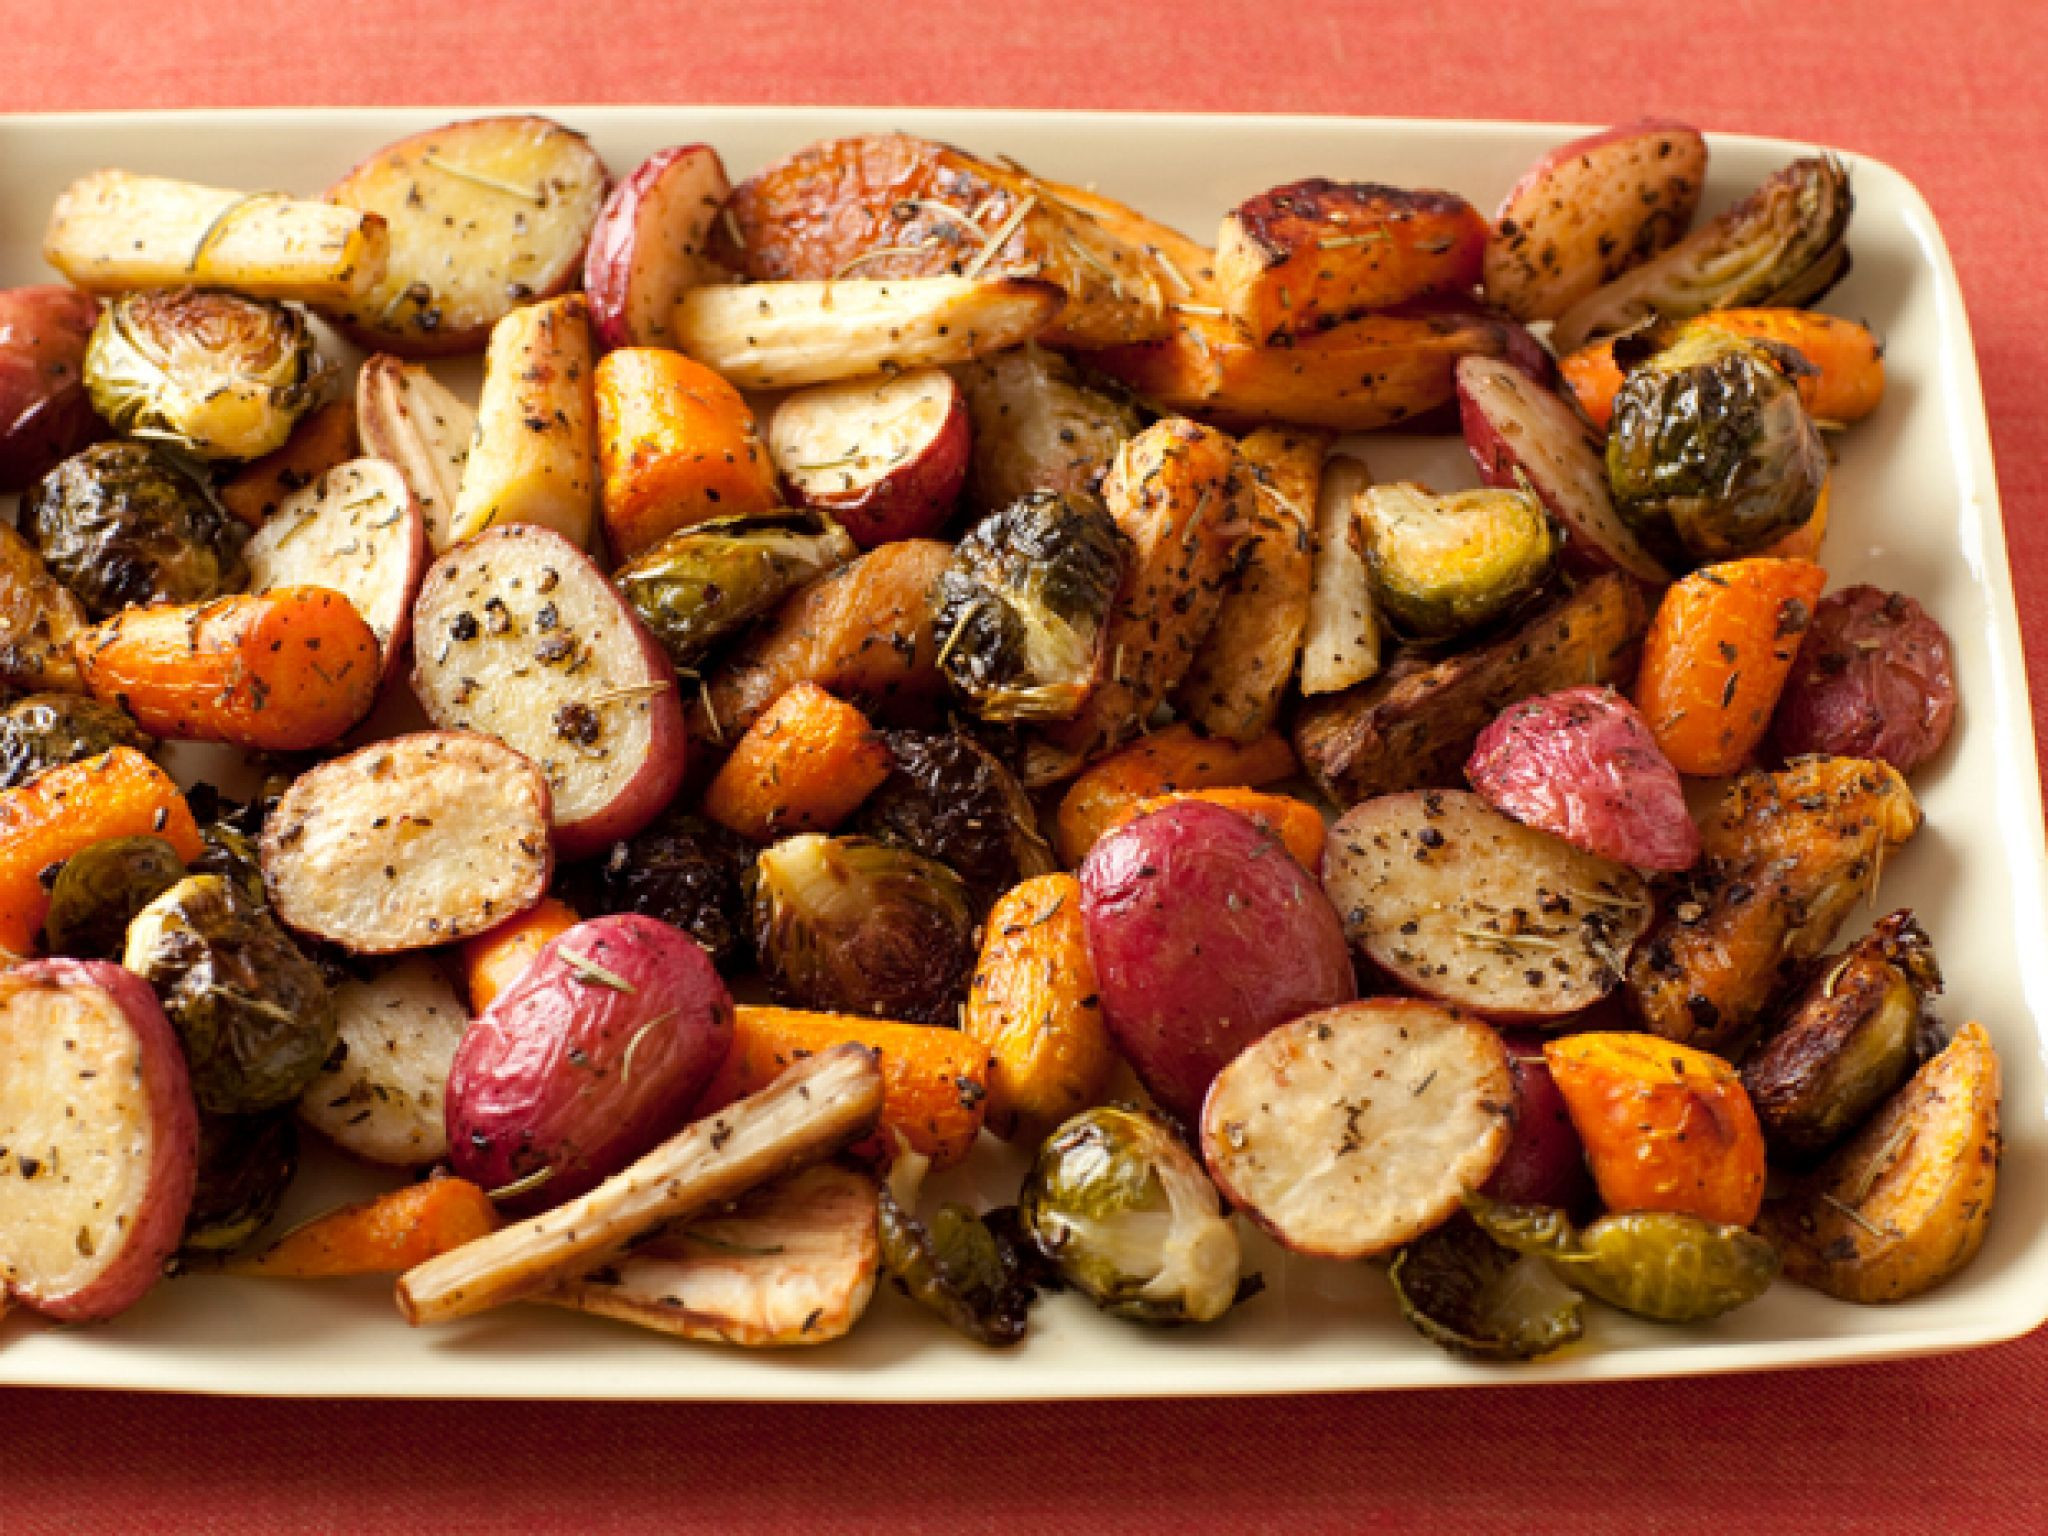 Roasted Vegetables Thanksgiving Recipe  100 Classic Thanksgiving Side Dish Recipes Food Network